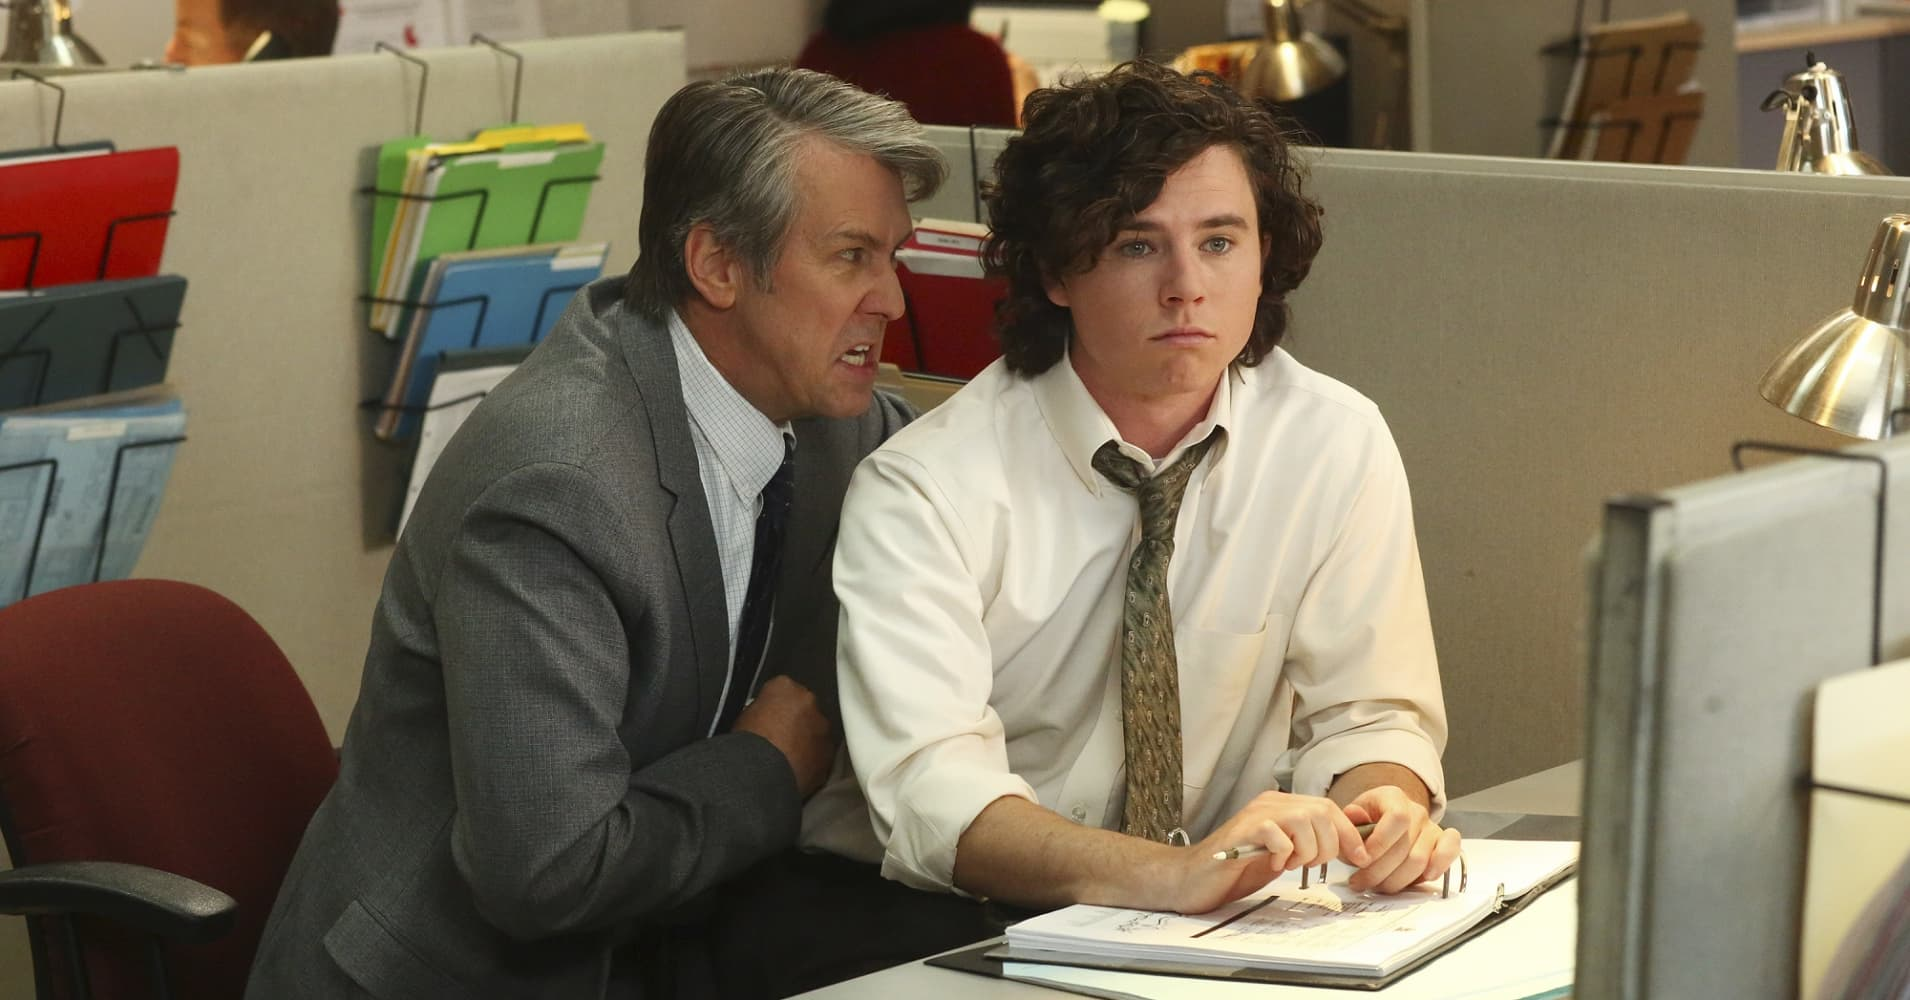 Alan Ruck and Charlie McDermott on ABC's 'The Middle.'